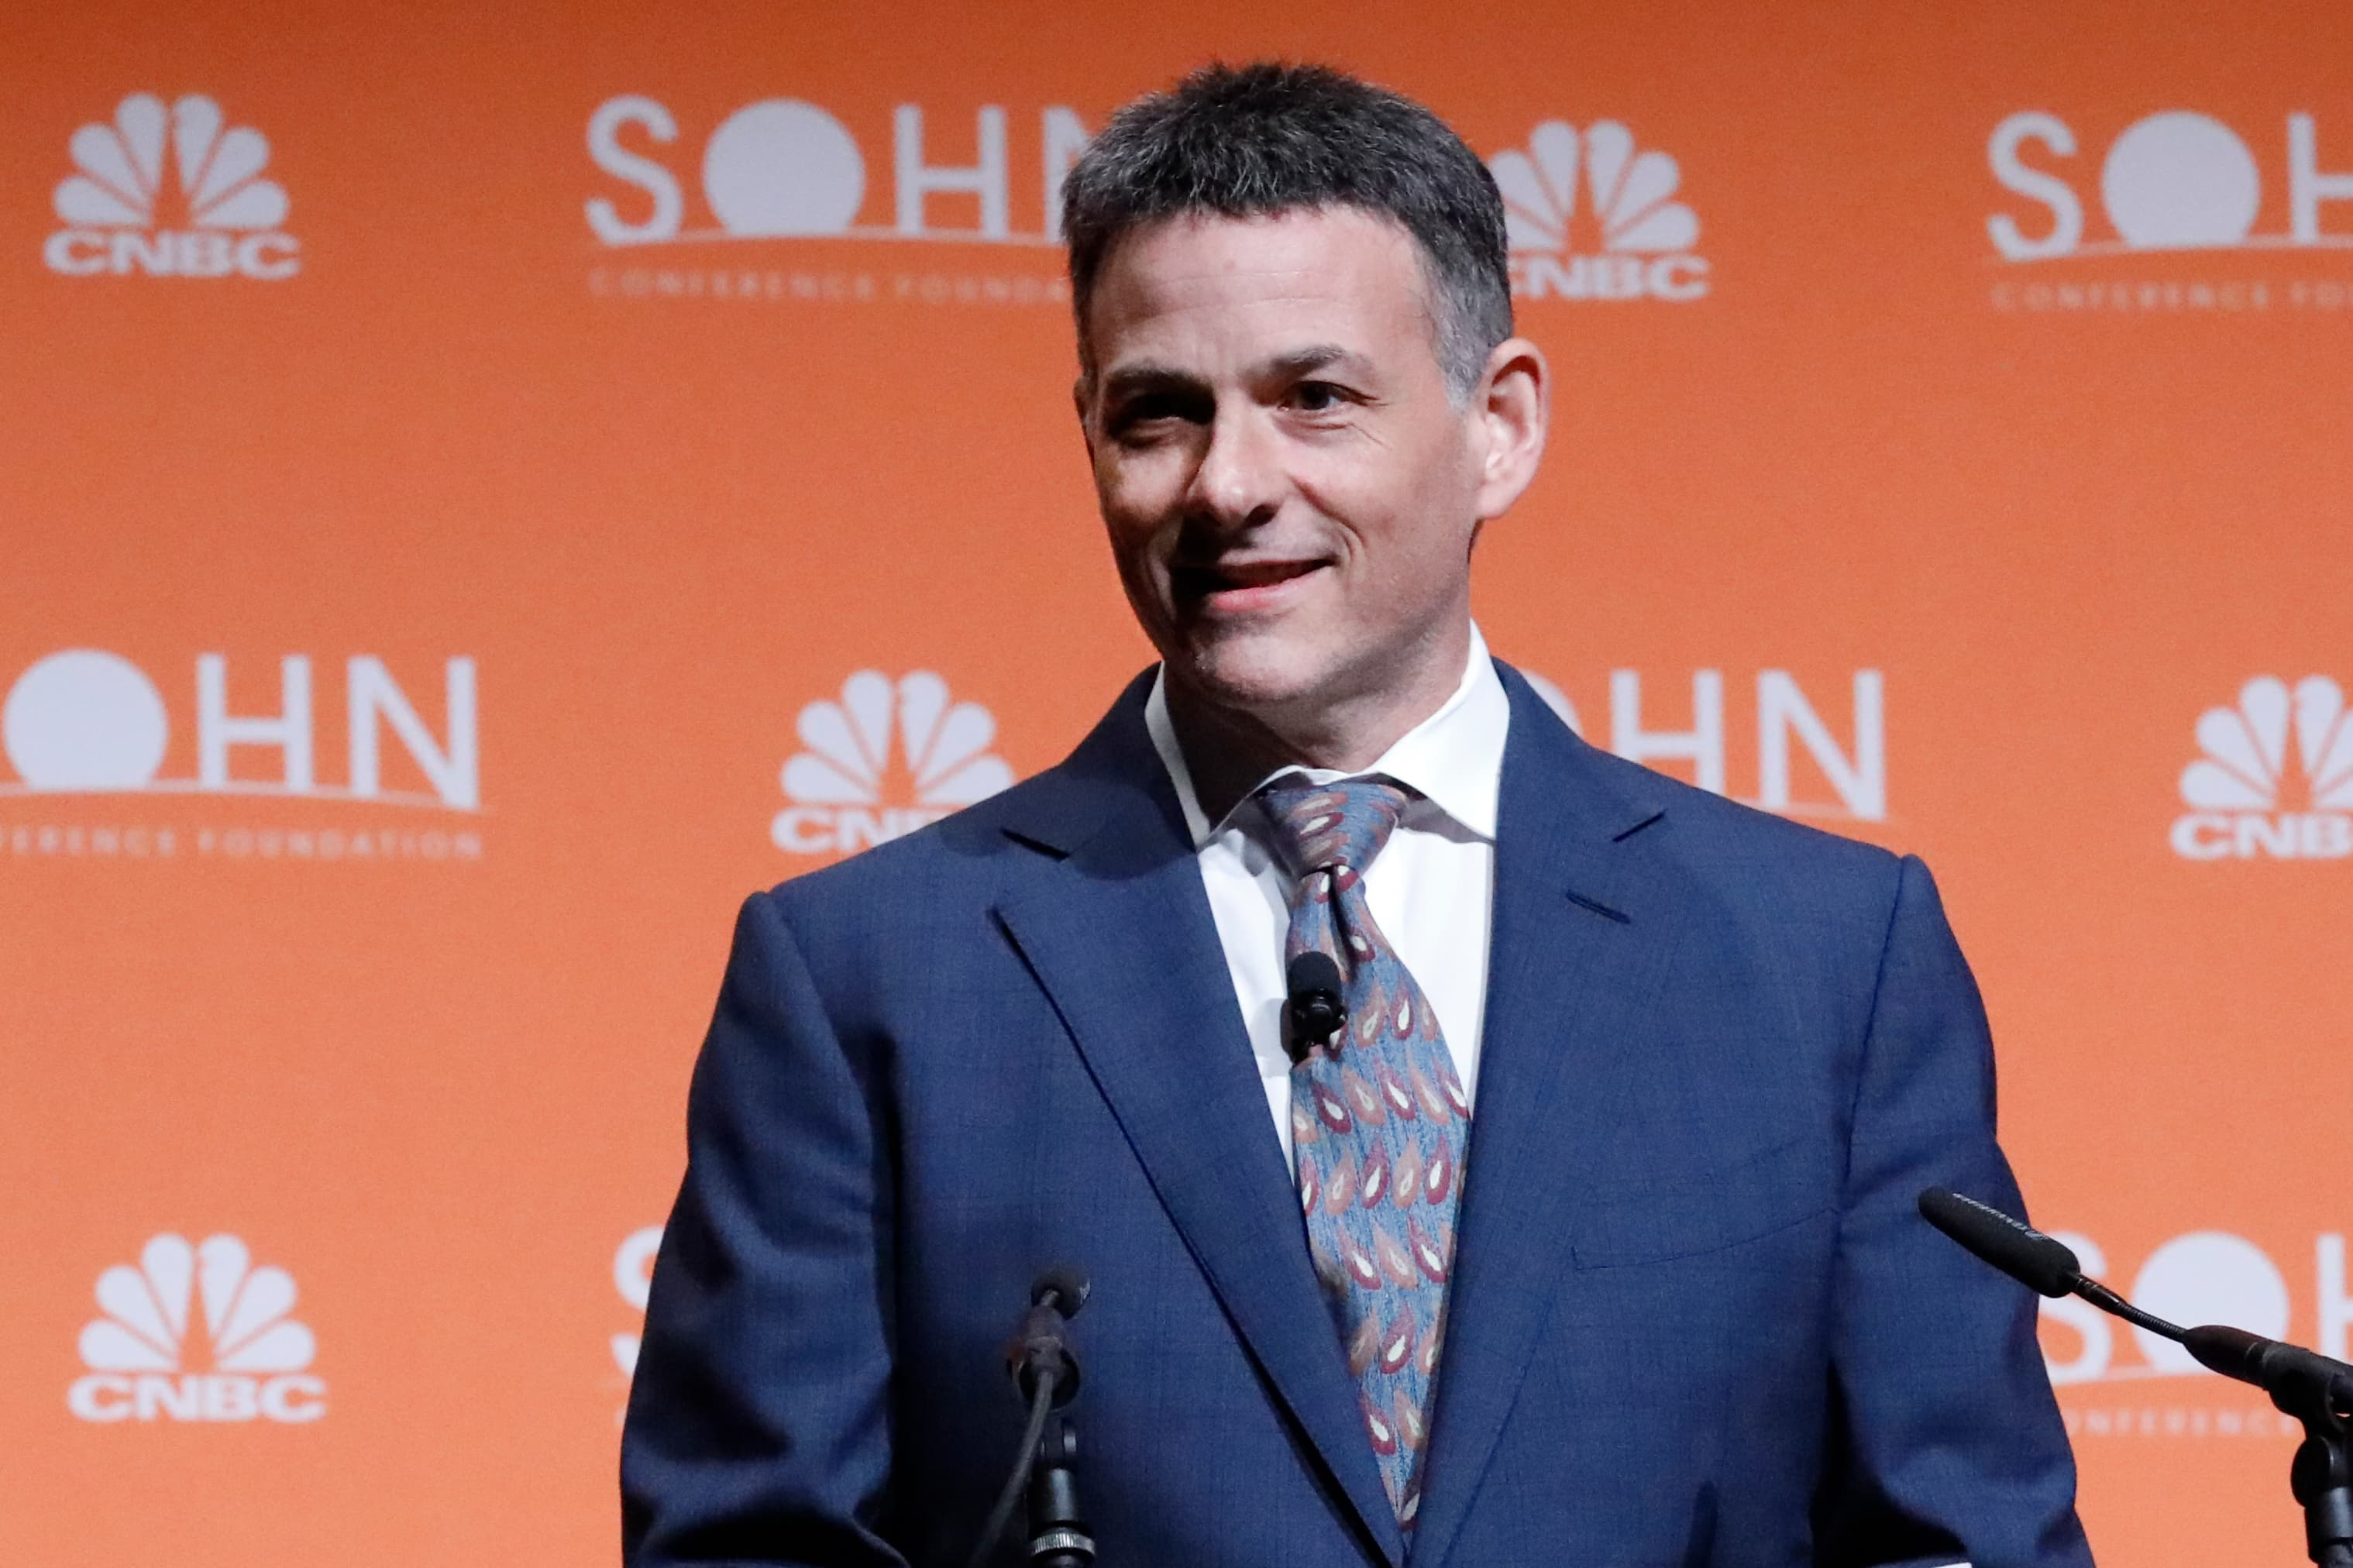 Hedge fund manager David Einhorn unveils two new trades at the Sohn conference